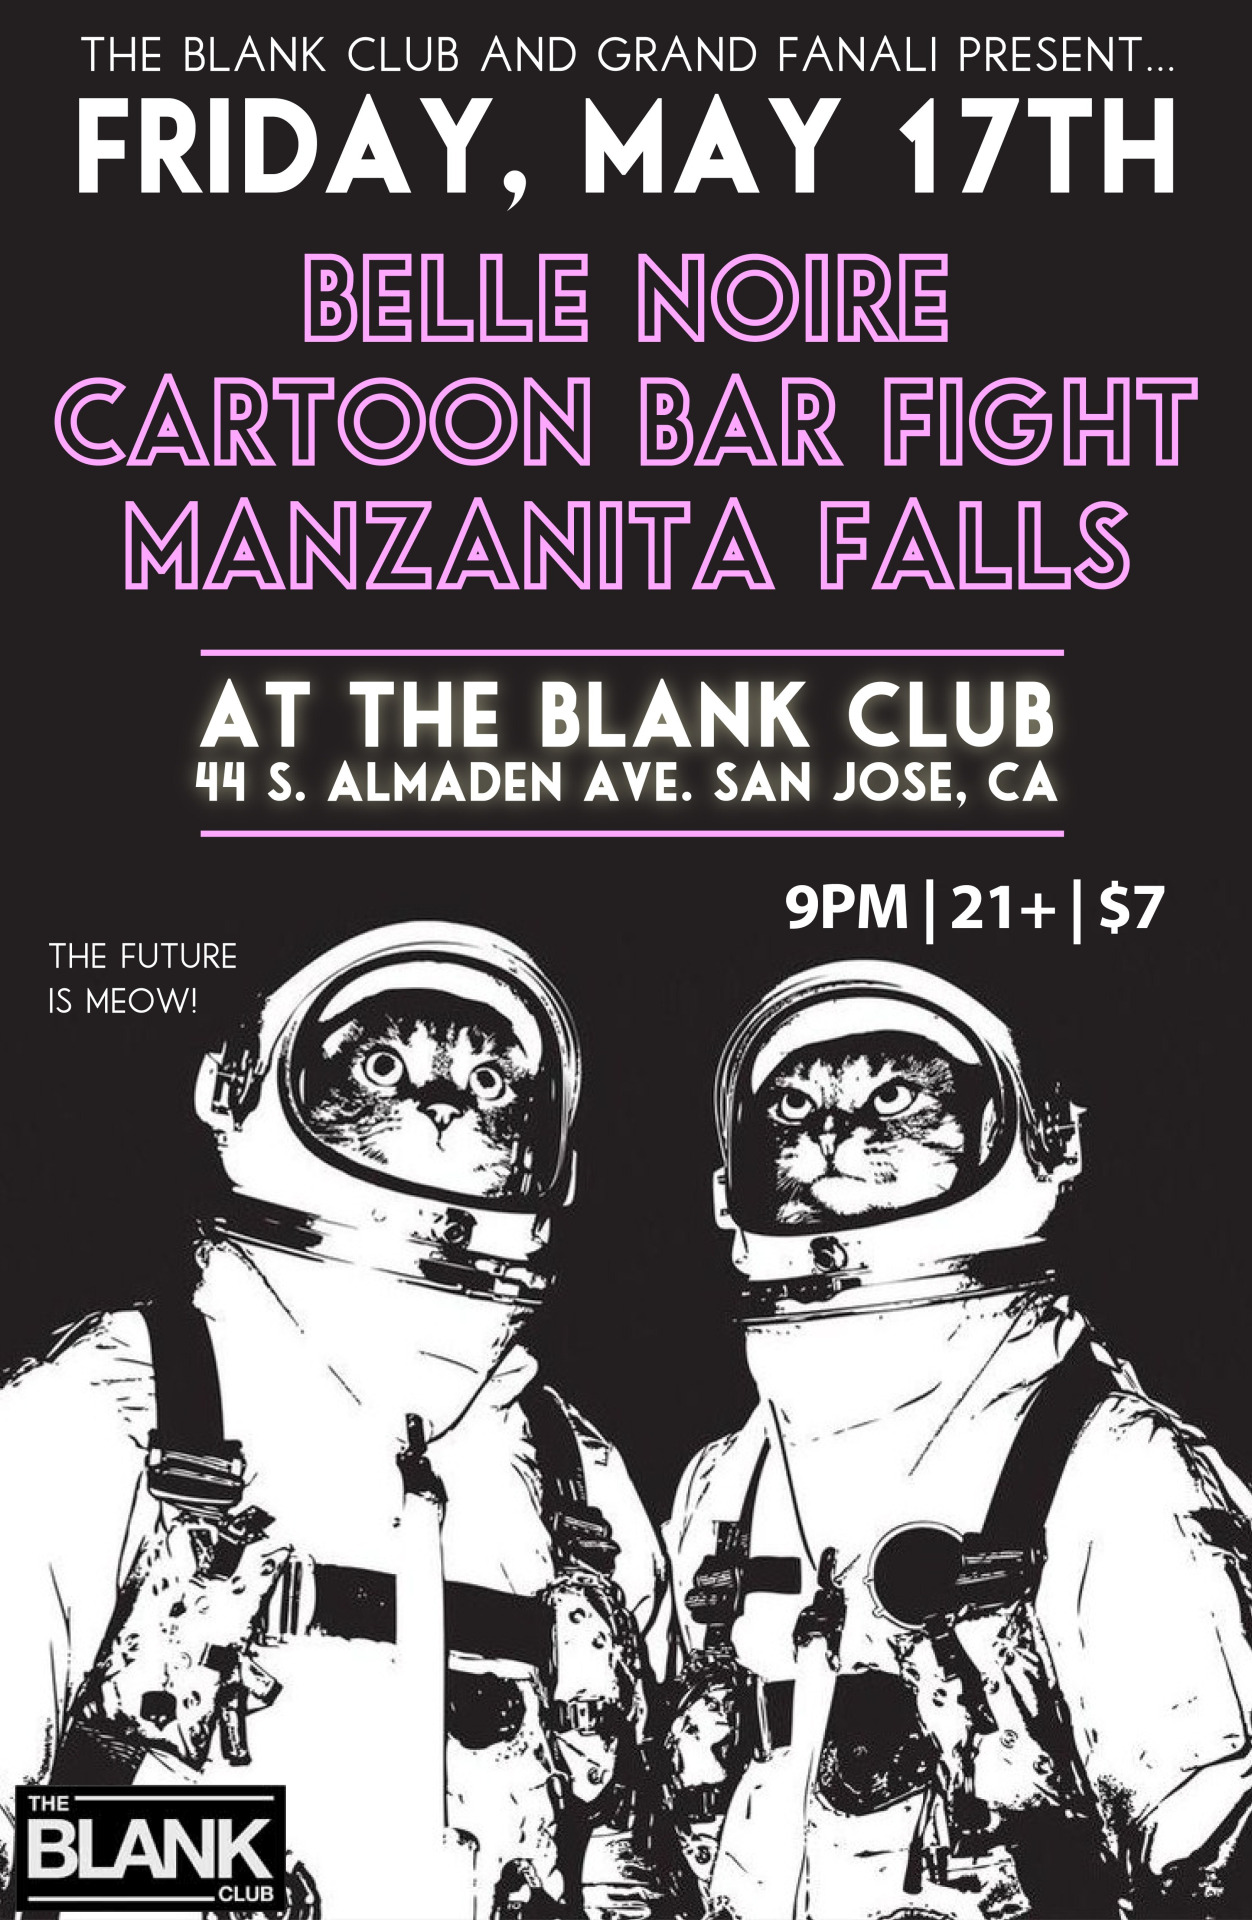 Surprise! After a three month songwriting break, we'll be back in action with our friends  Manzanita Falls  and  Belle Noire  at  The Blank Club . FRIDAY MAY 17/9PM/21+/$7. Do us a favor and mark it on your calender…we want to play our new music for you. Especially the sci-fi lovers among you. Facebook invite  here .